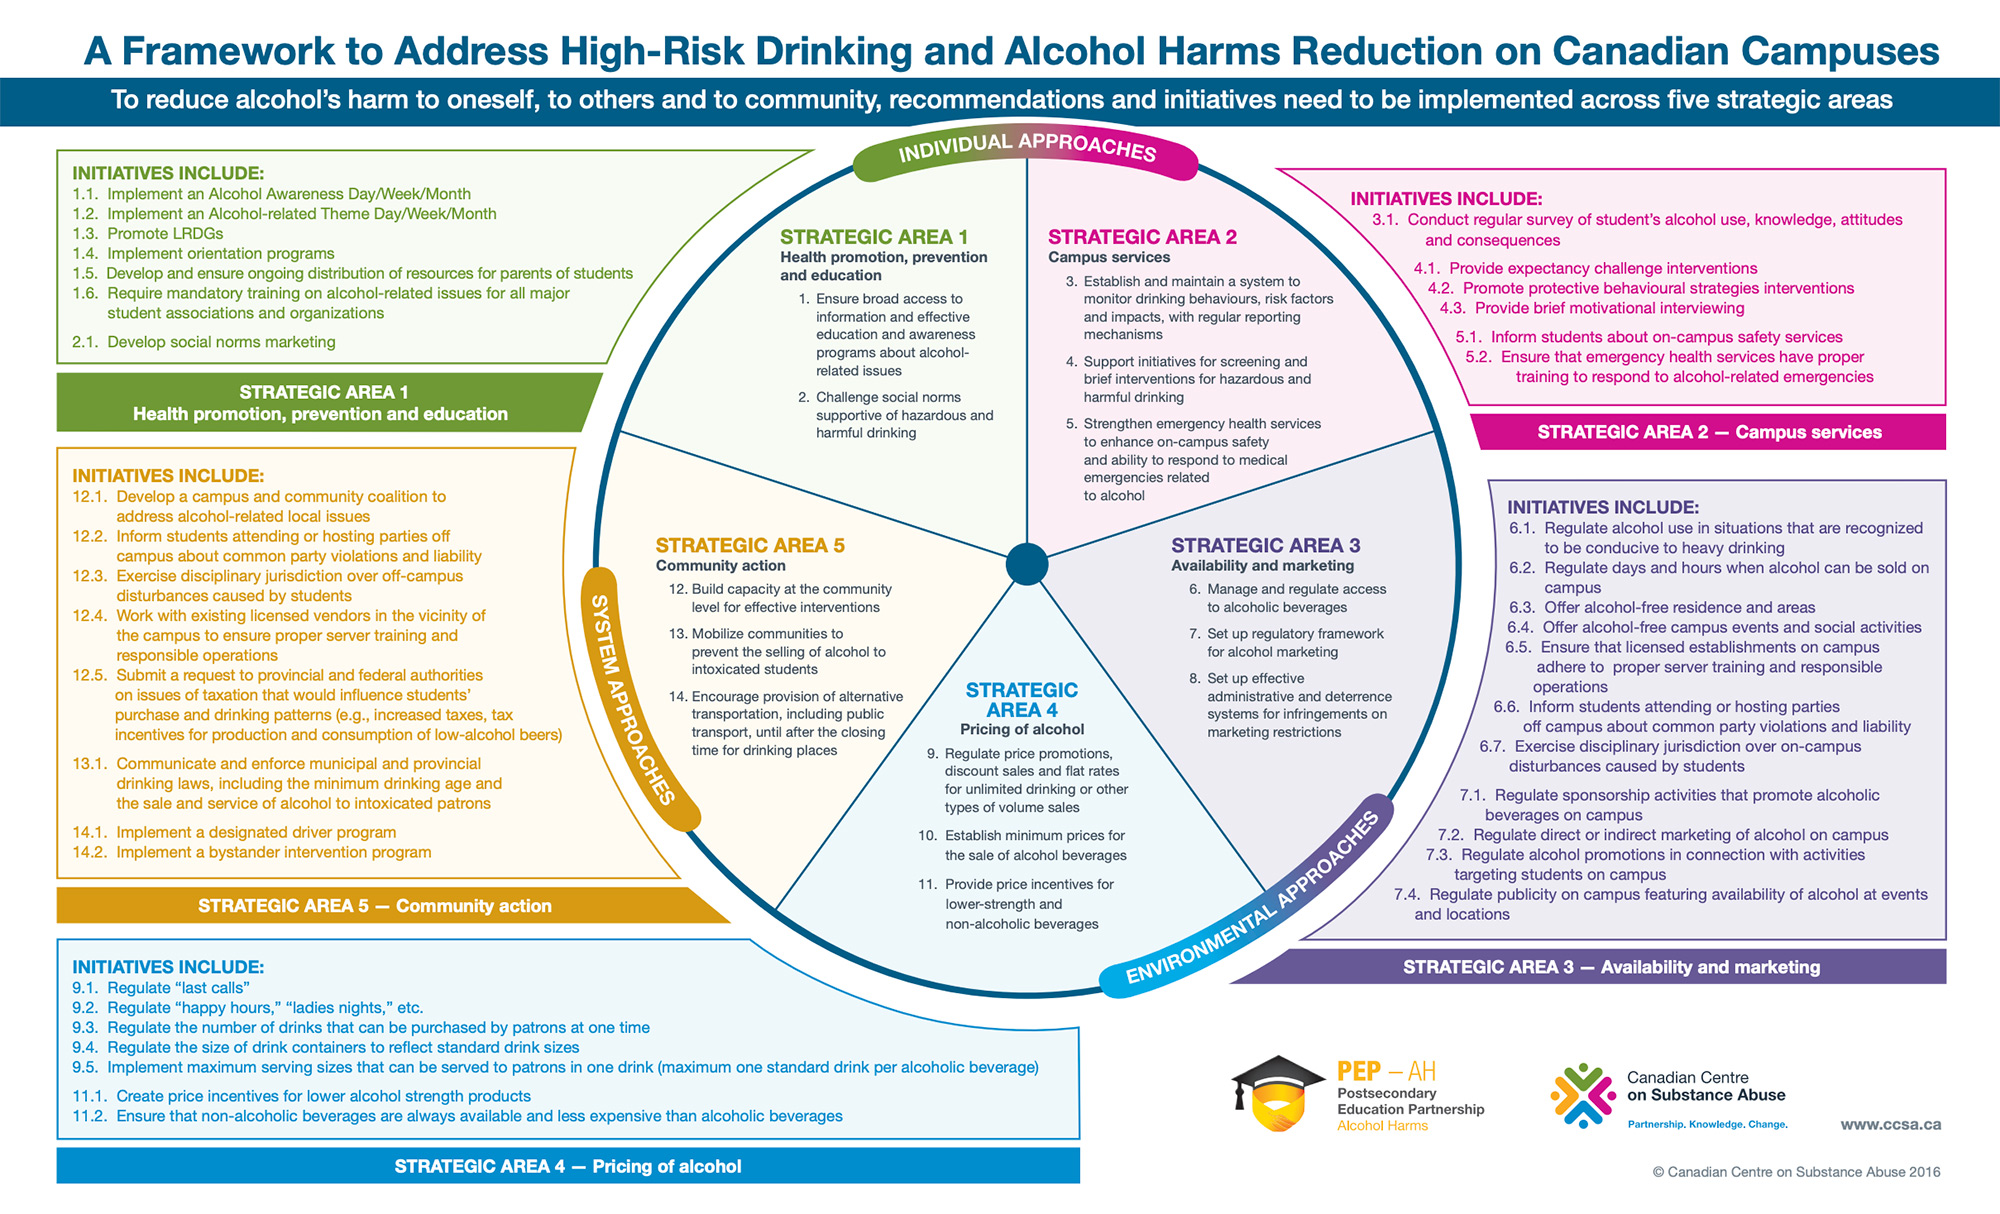 A Framework to Address High-Risk Drinking and Alcohol Harms Reduction on Canadian Campuses